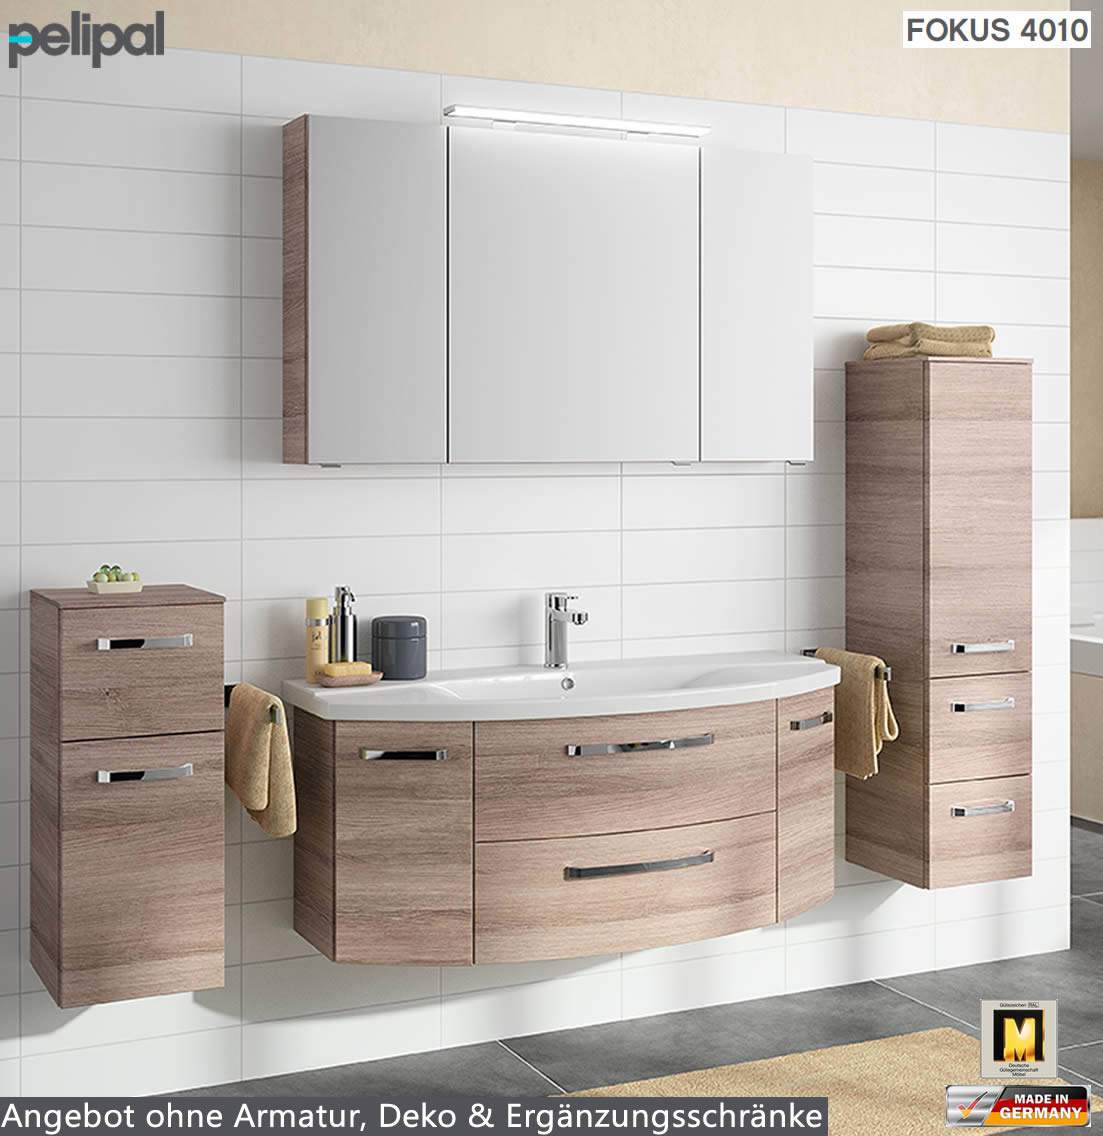 pelipal fokus 4010 badm bel set 3tlg 120 cm mit keramik. Black Bedroom Furniture Sets. Home Design Ideas